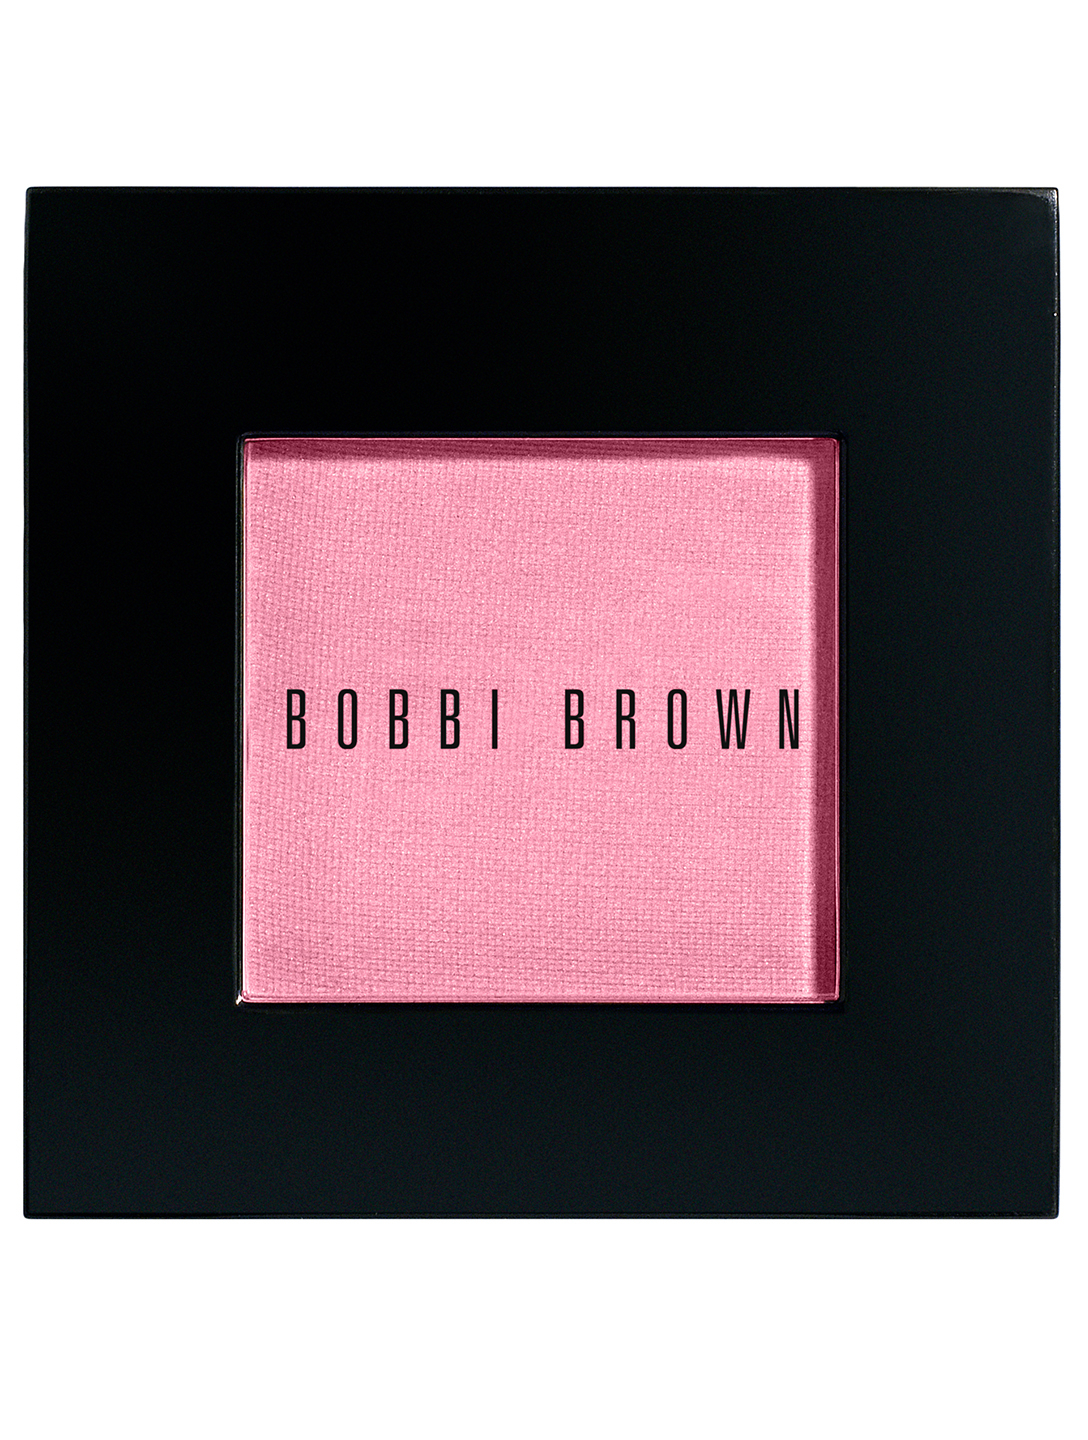 BOBBI BROWN Fard à joues Beauté Rose